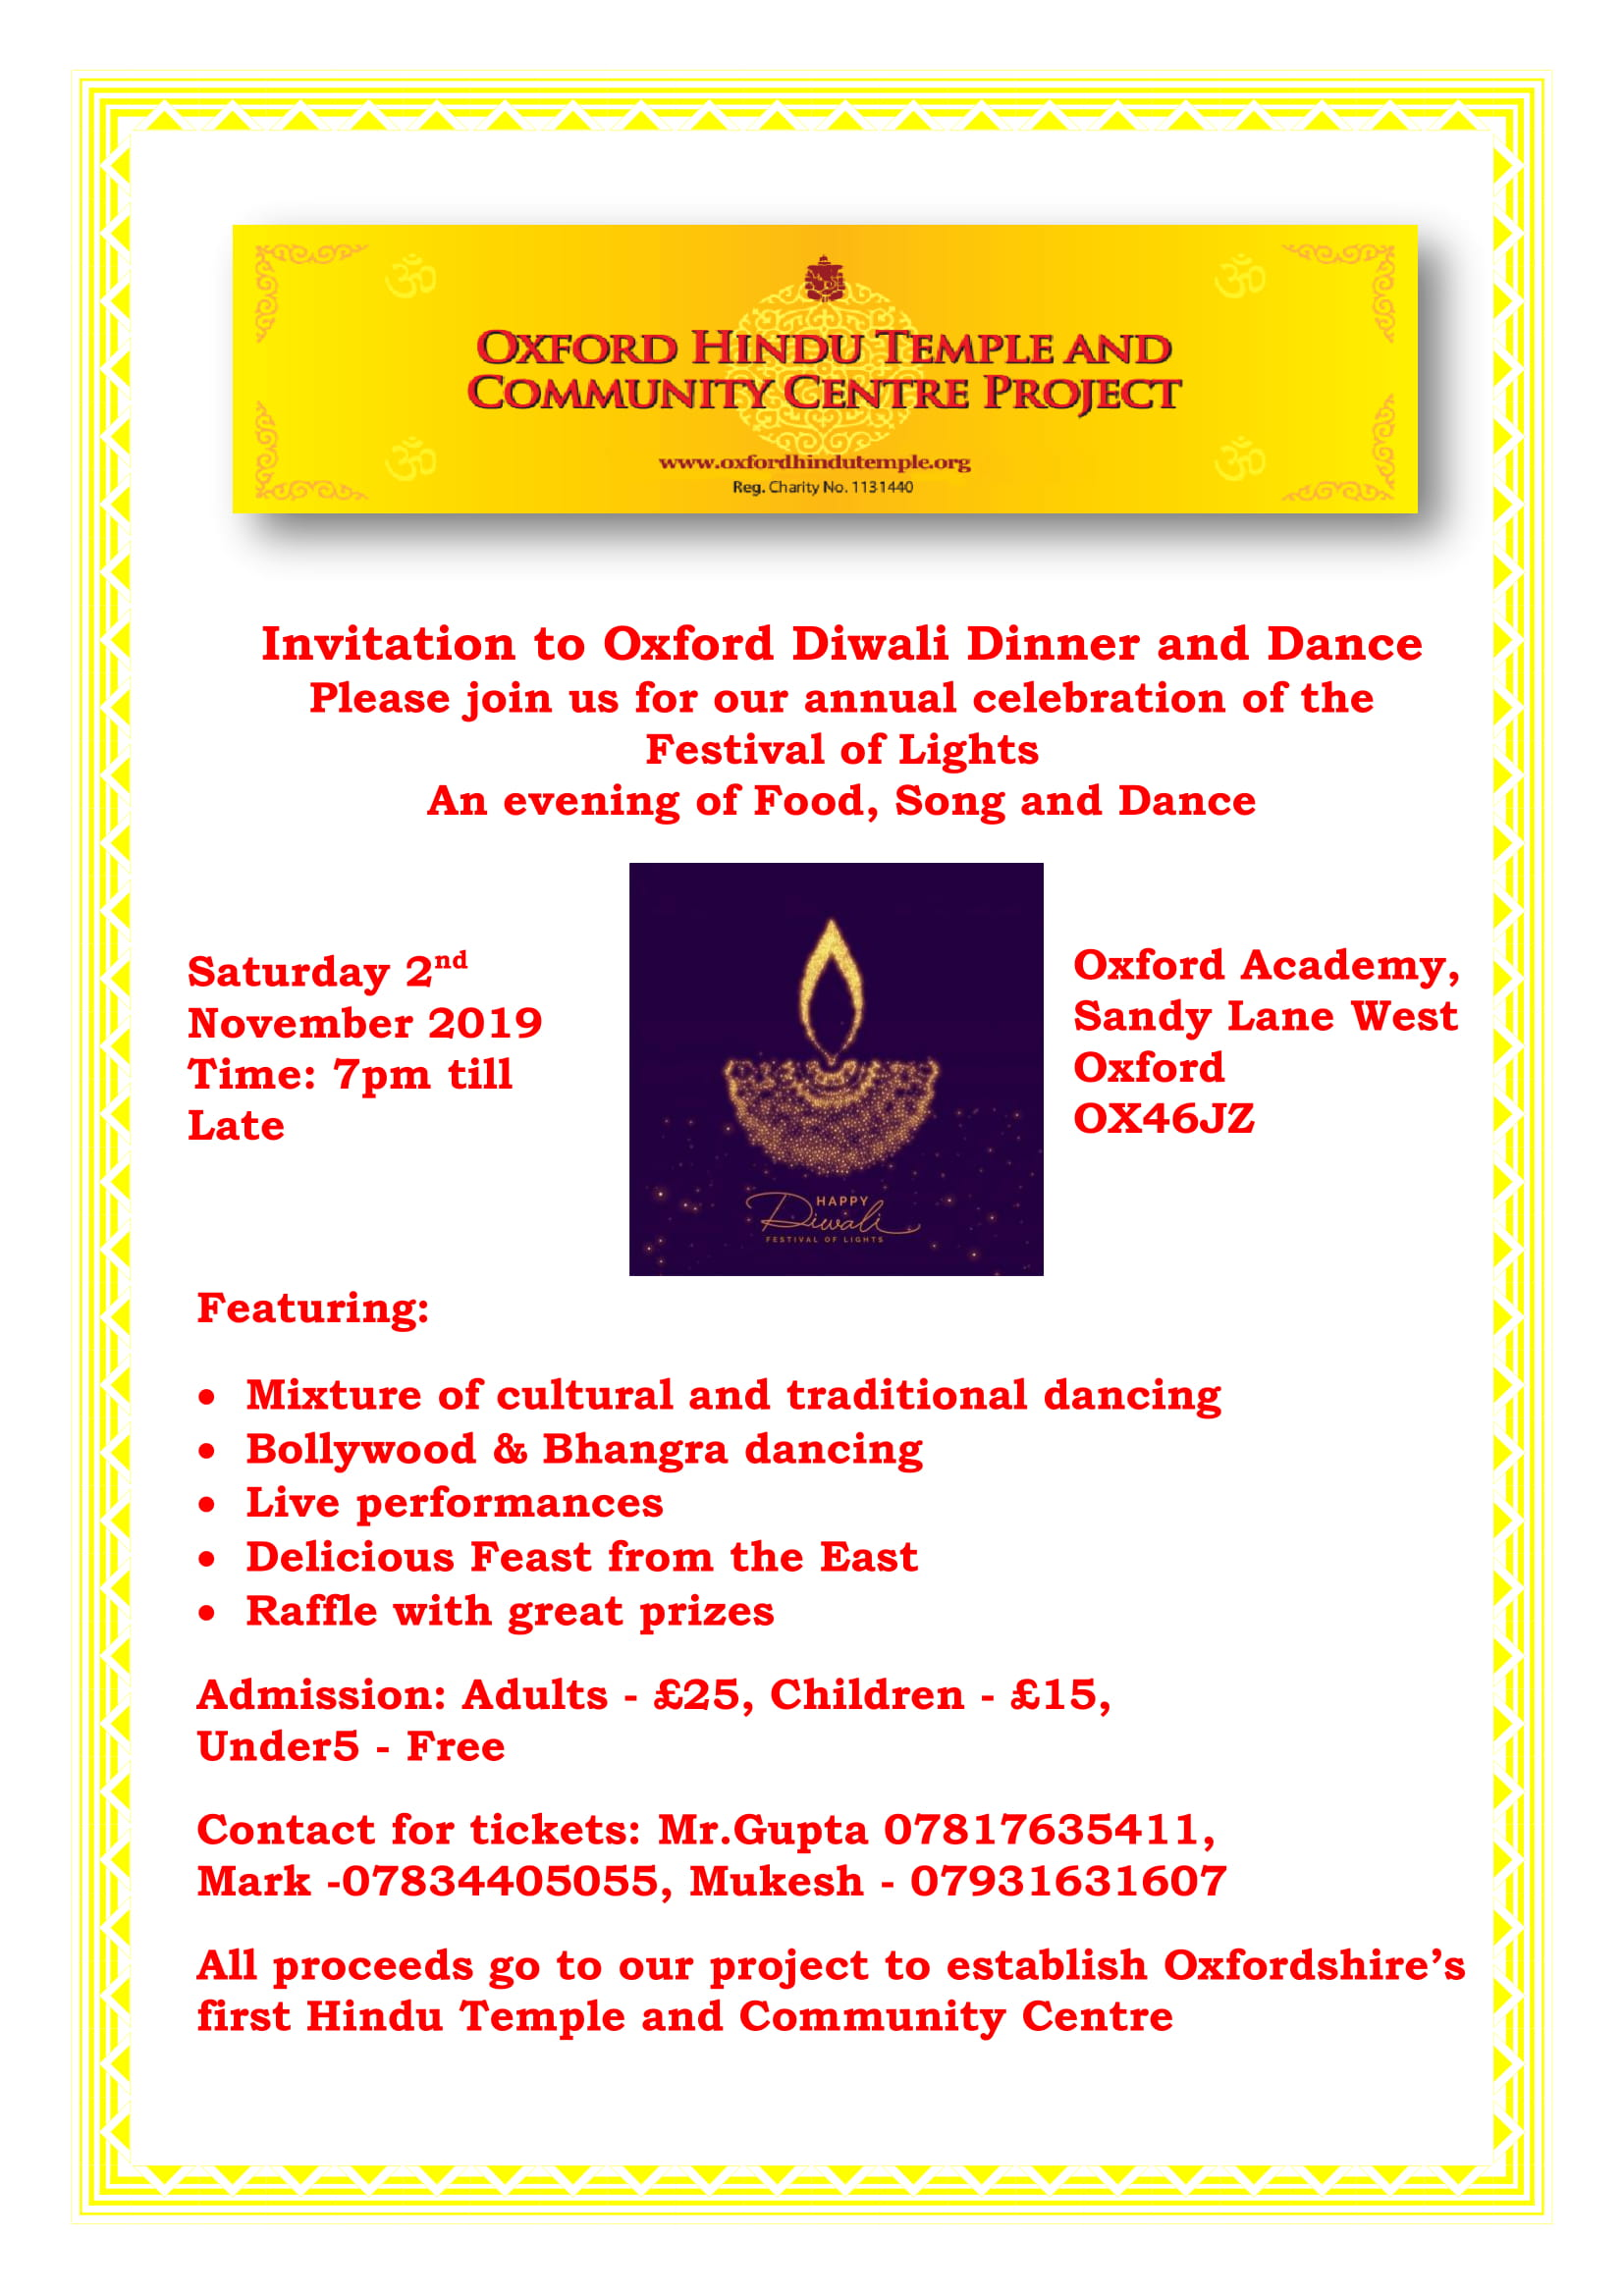 Oxford Diwali Dinner and Dance